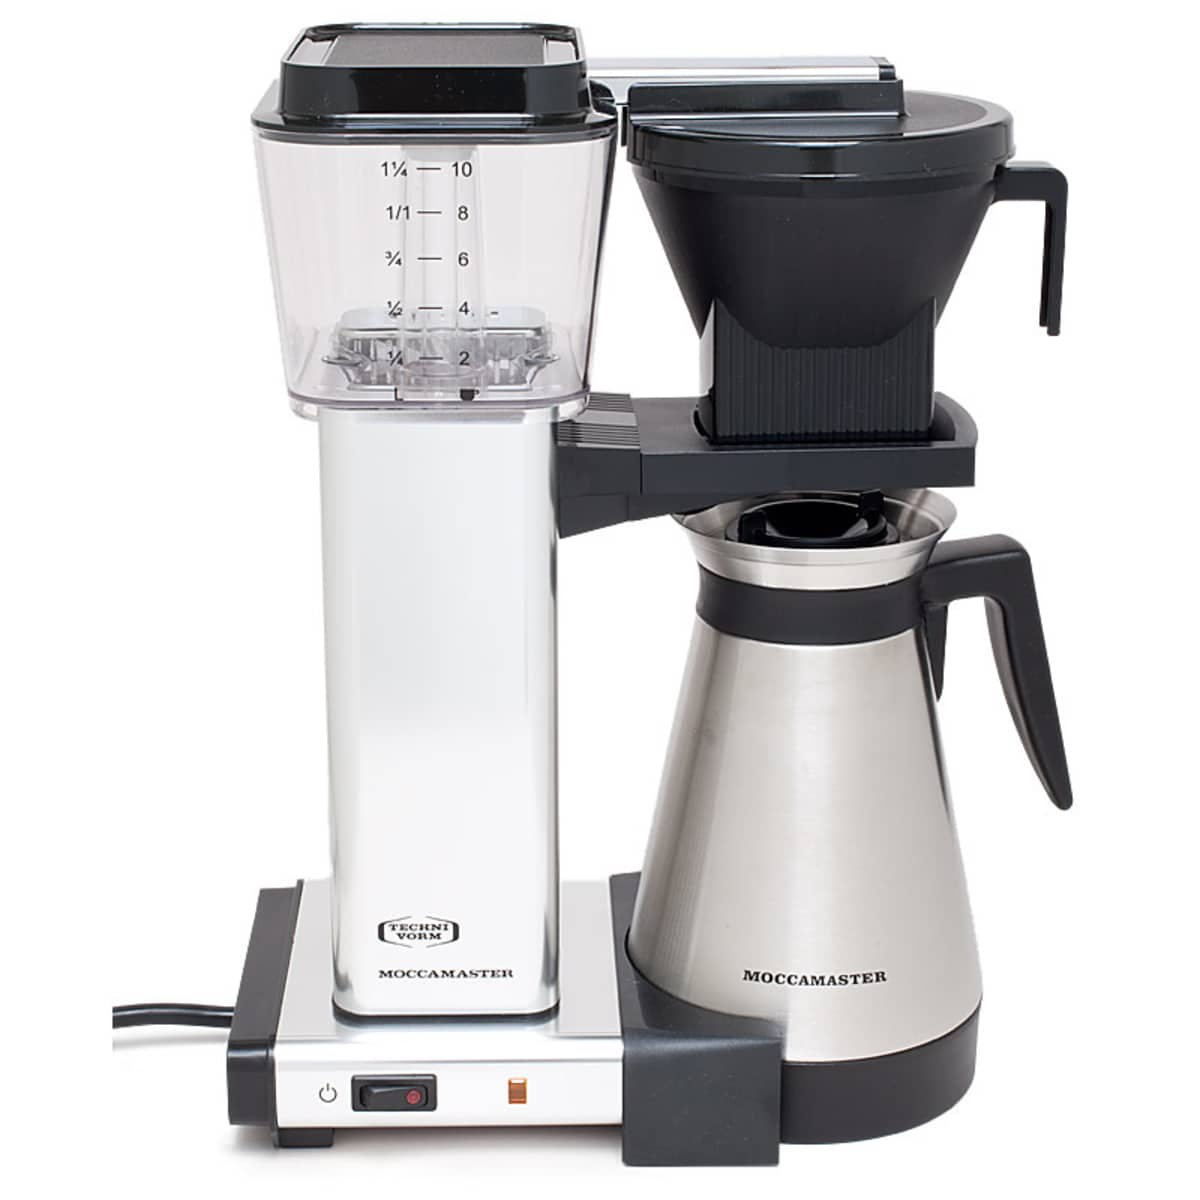 The Best Best Coffee Maker Automatic Drip Cooks Illustrated